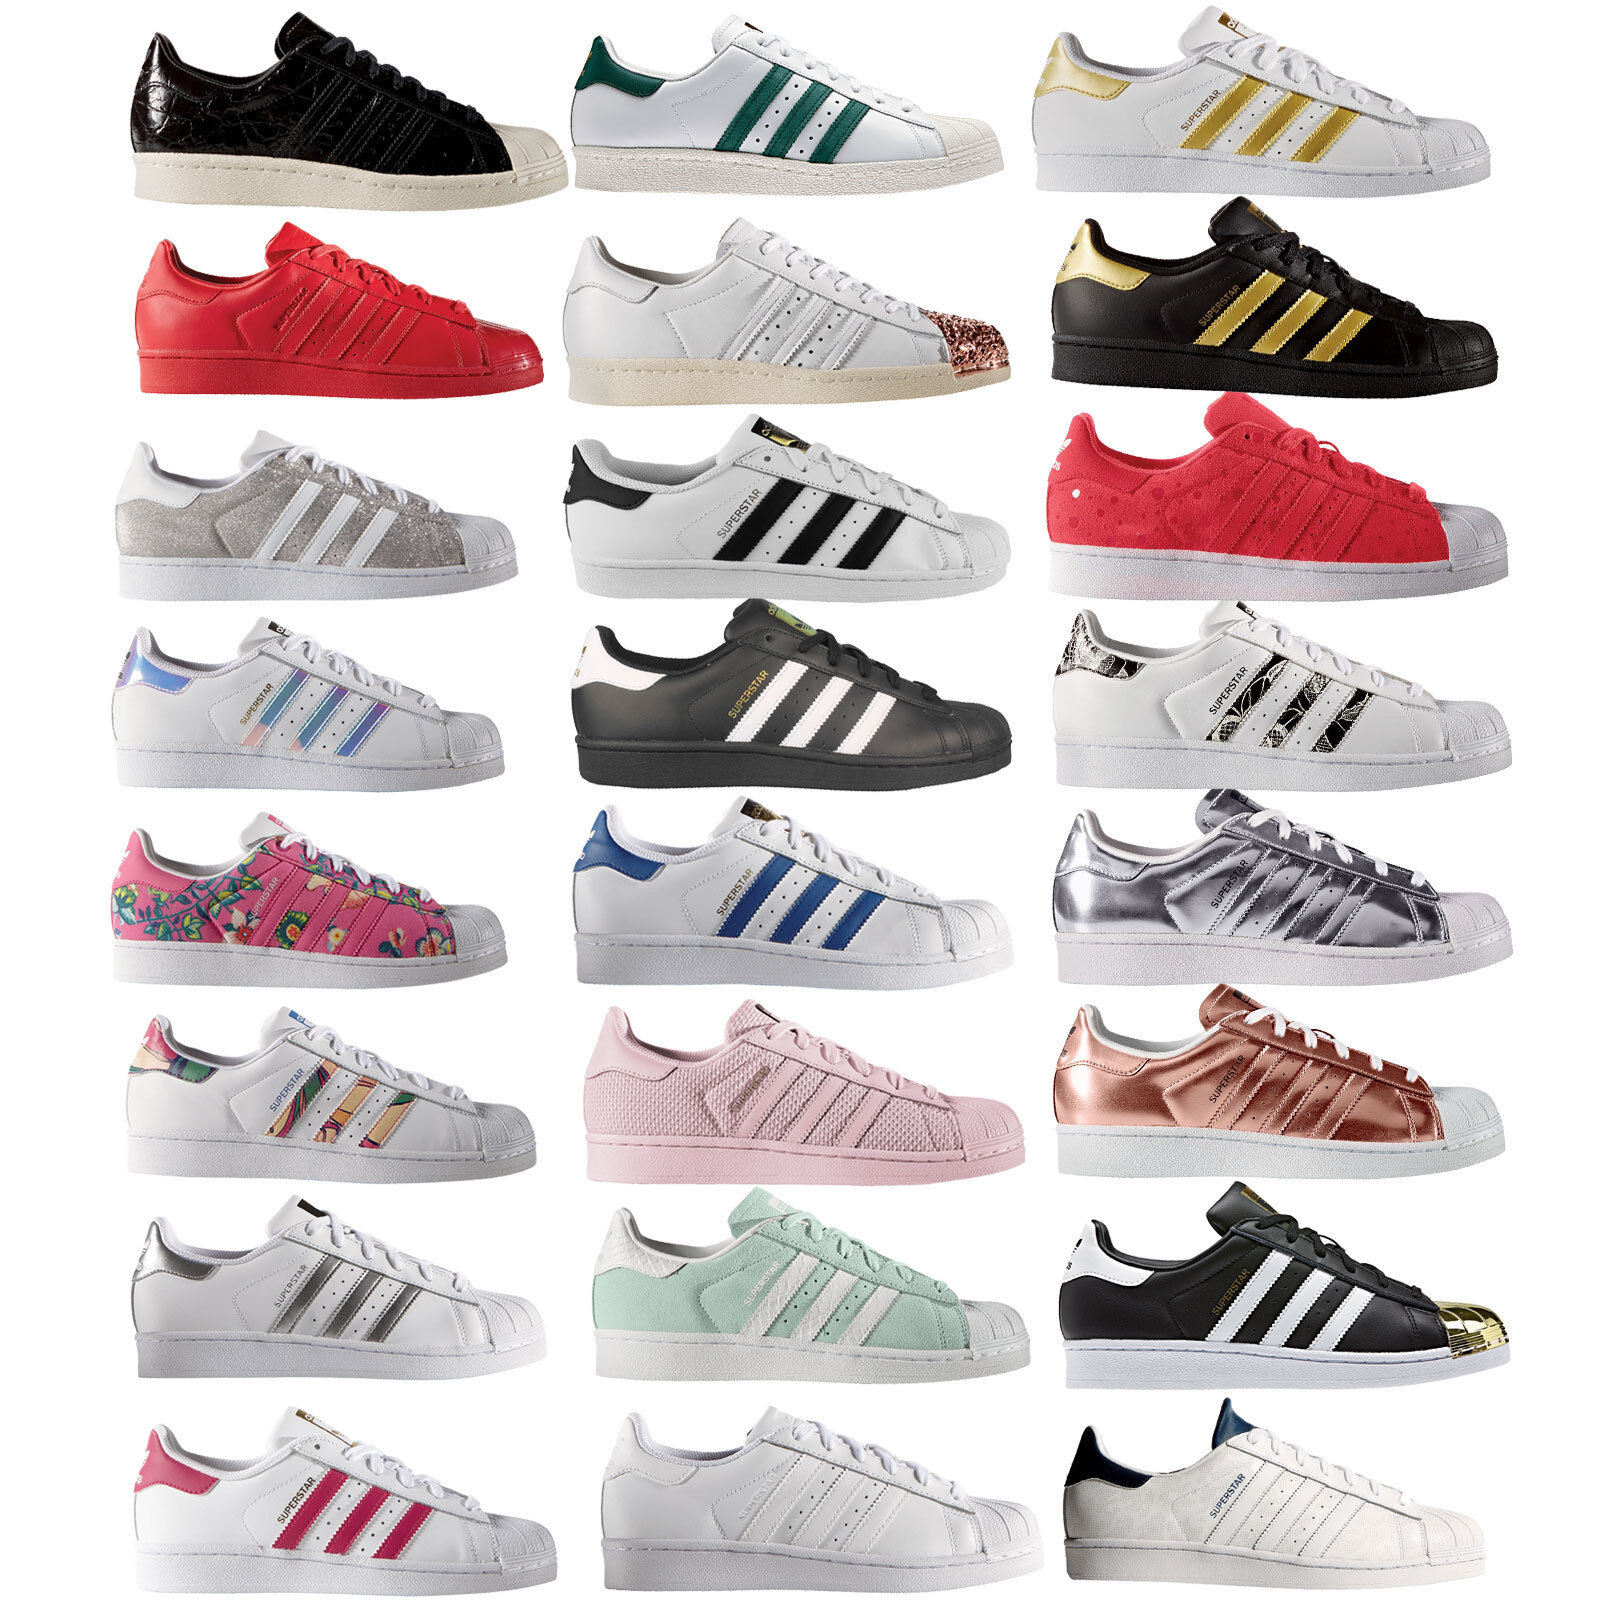 36 Best Adidas Superstar Sneakers (November 2019) | RunRepeat